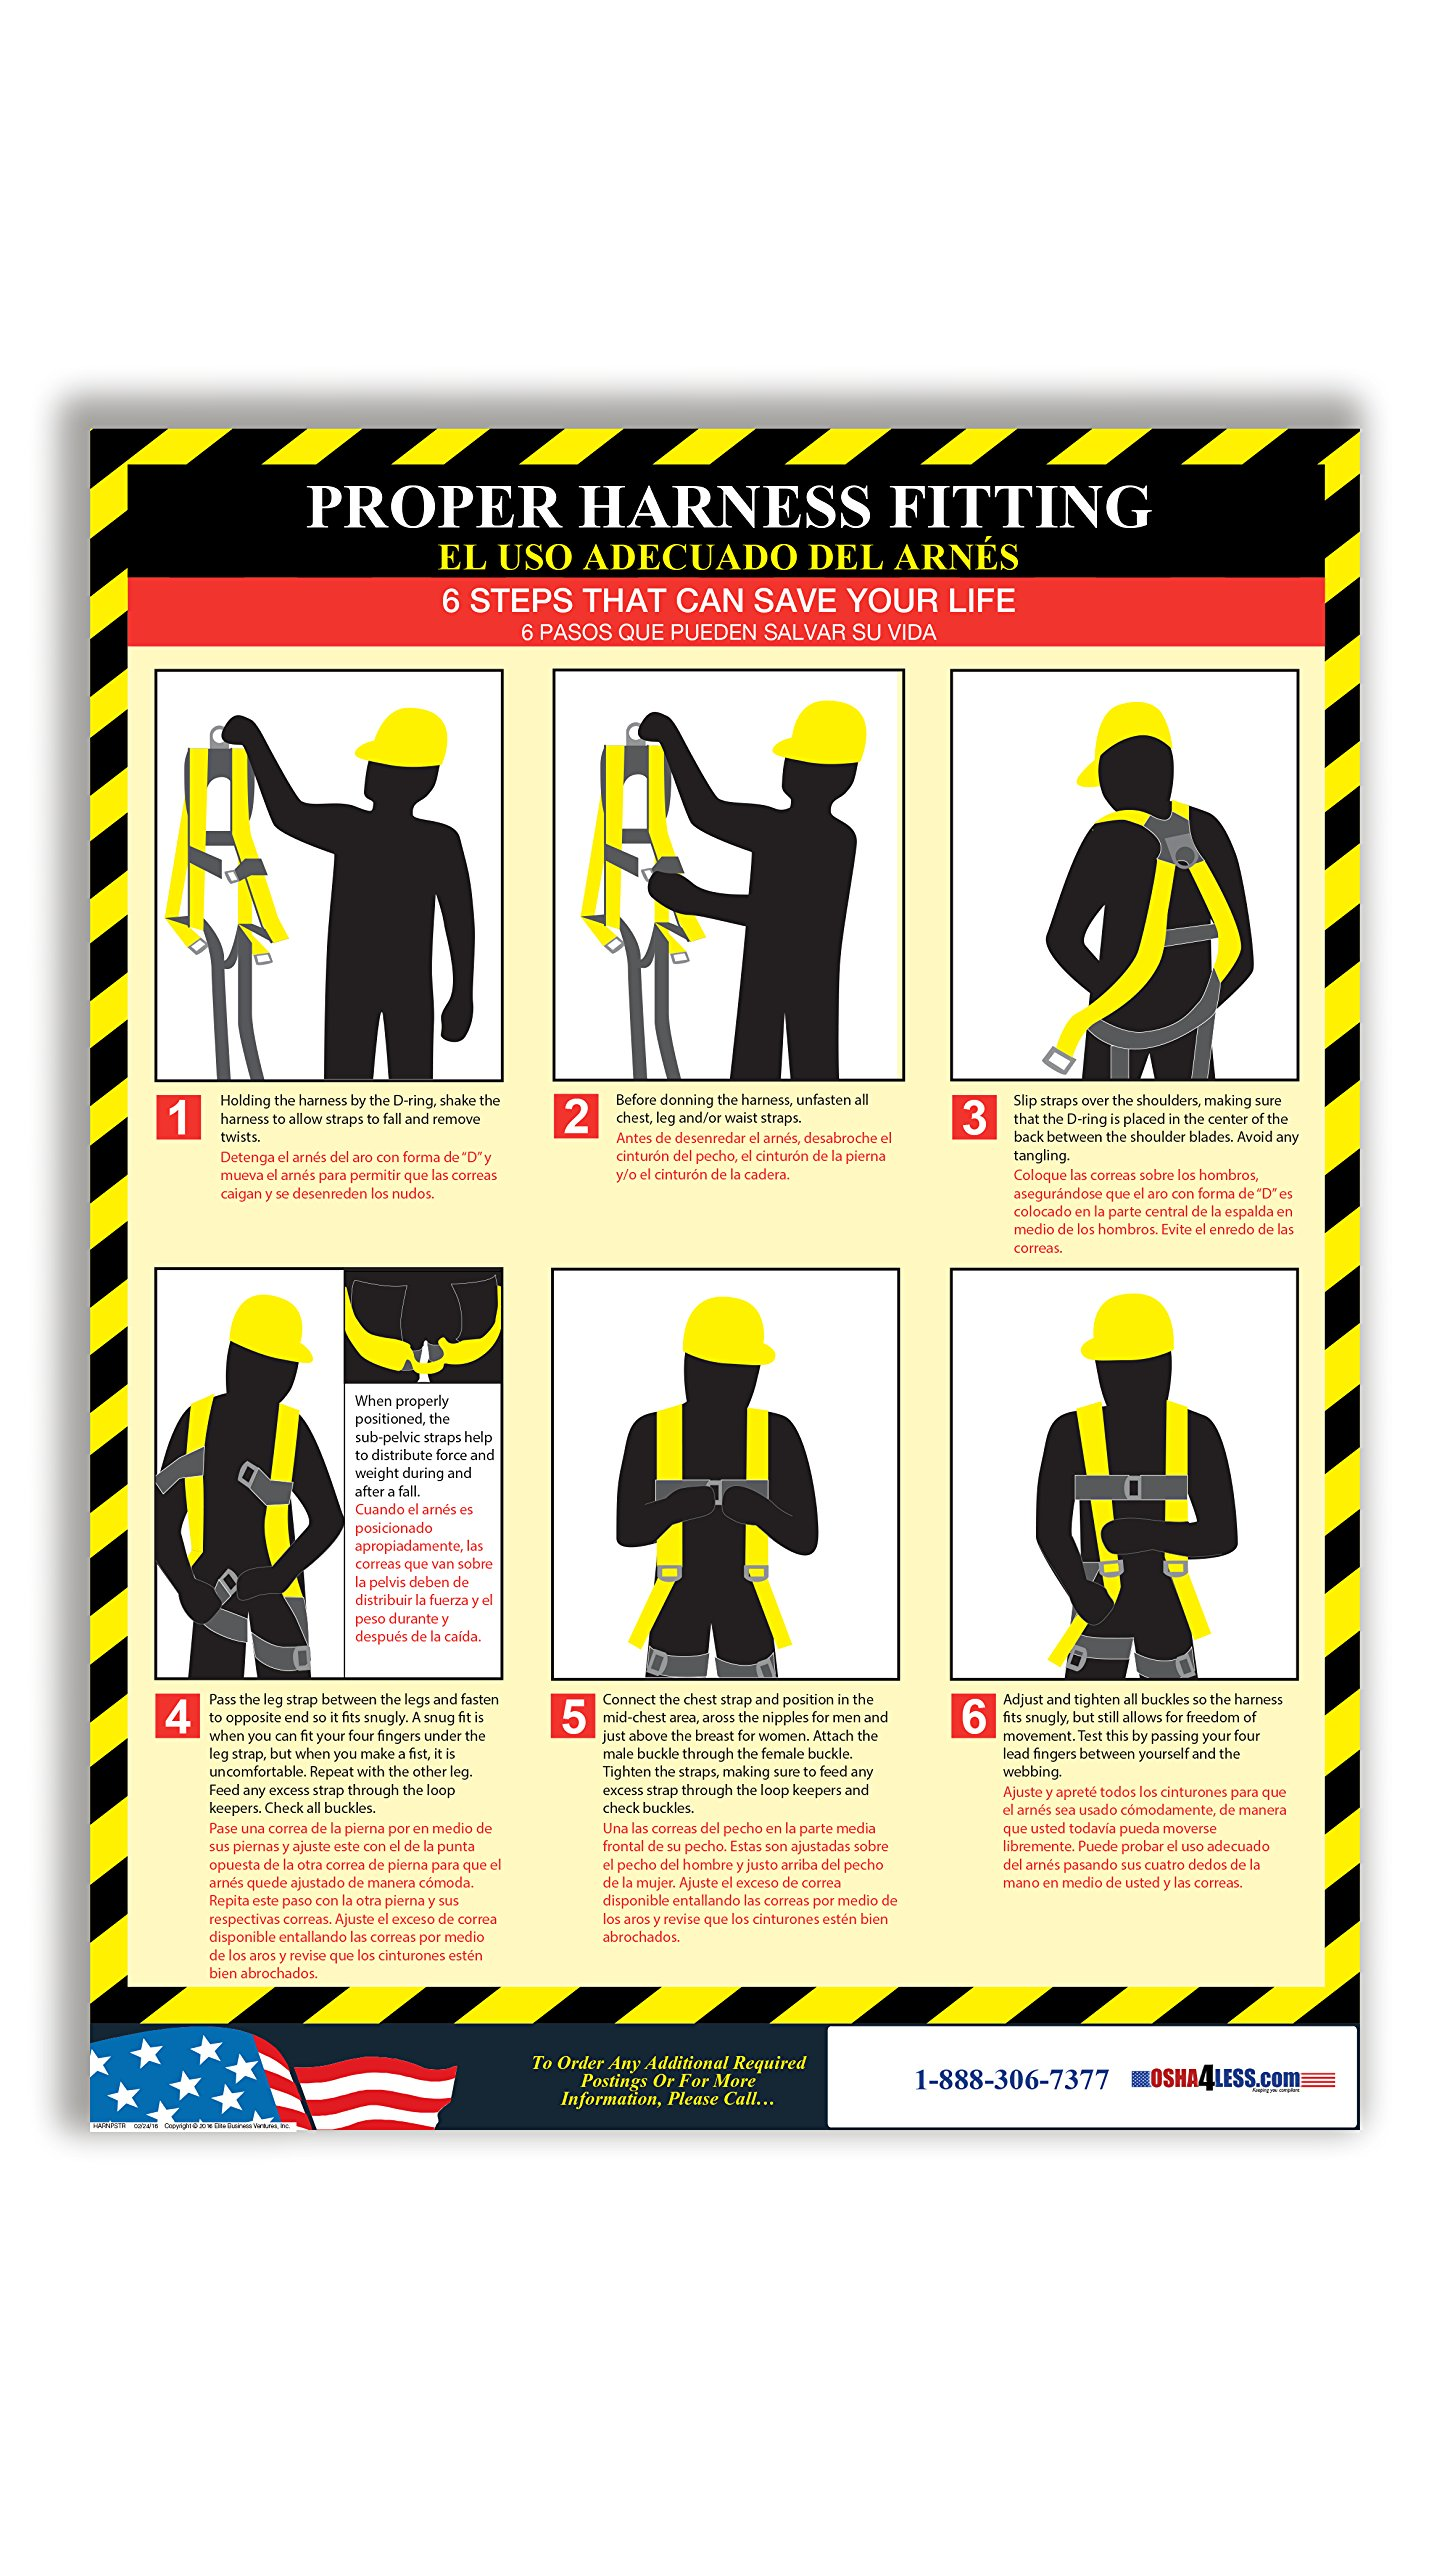 Proper Harness Fitting Poster (Bilingual) by Osha4Less